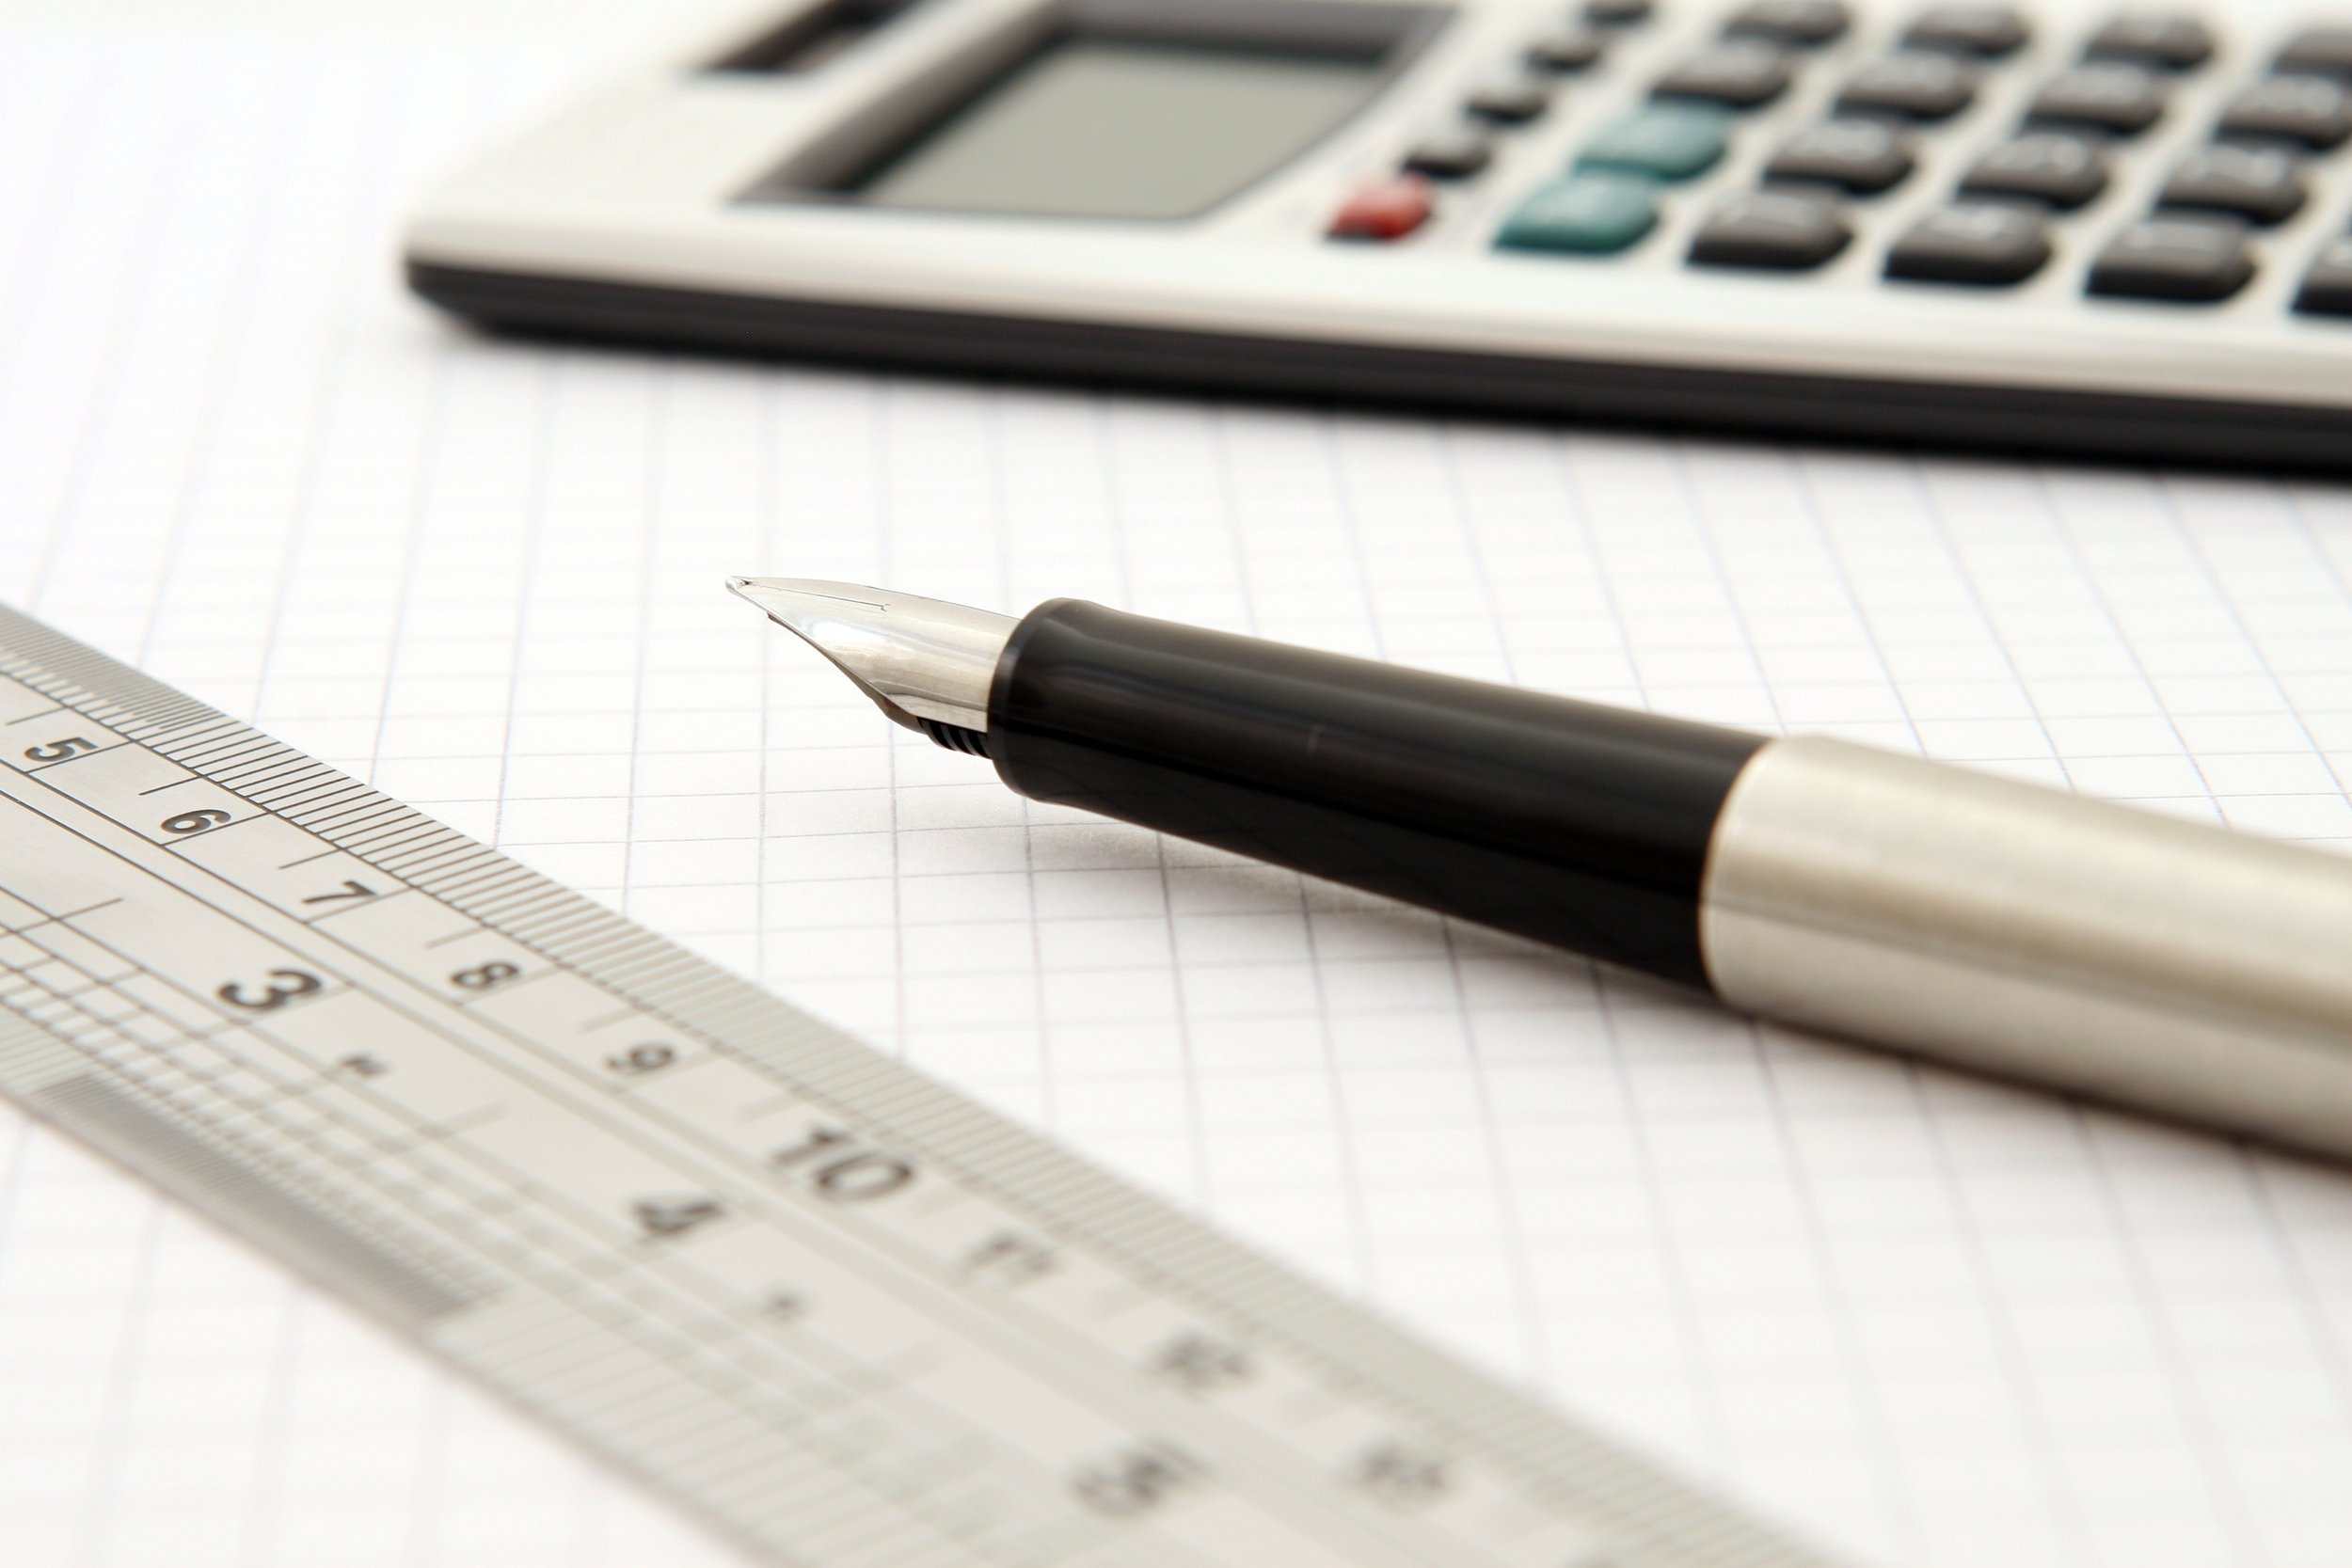 calculator-close-up-fountain-pen-159722.jpg